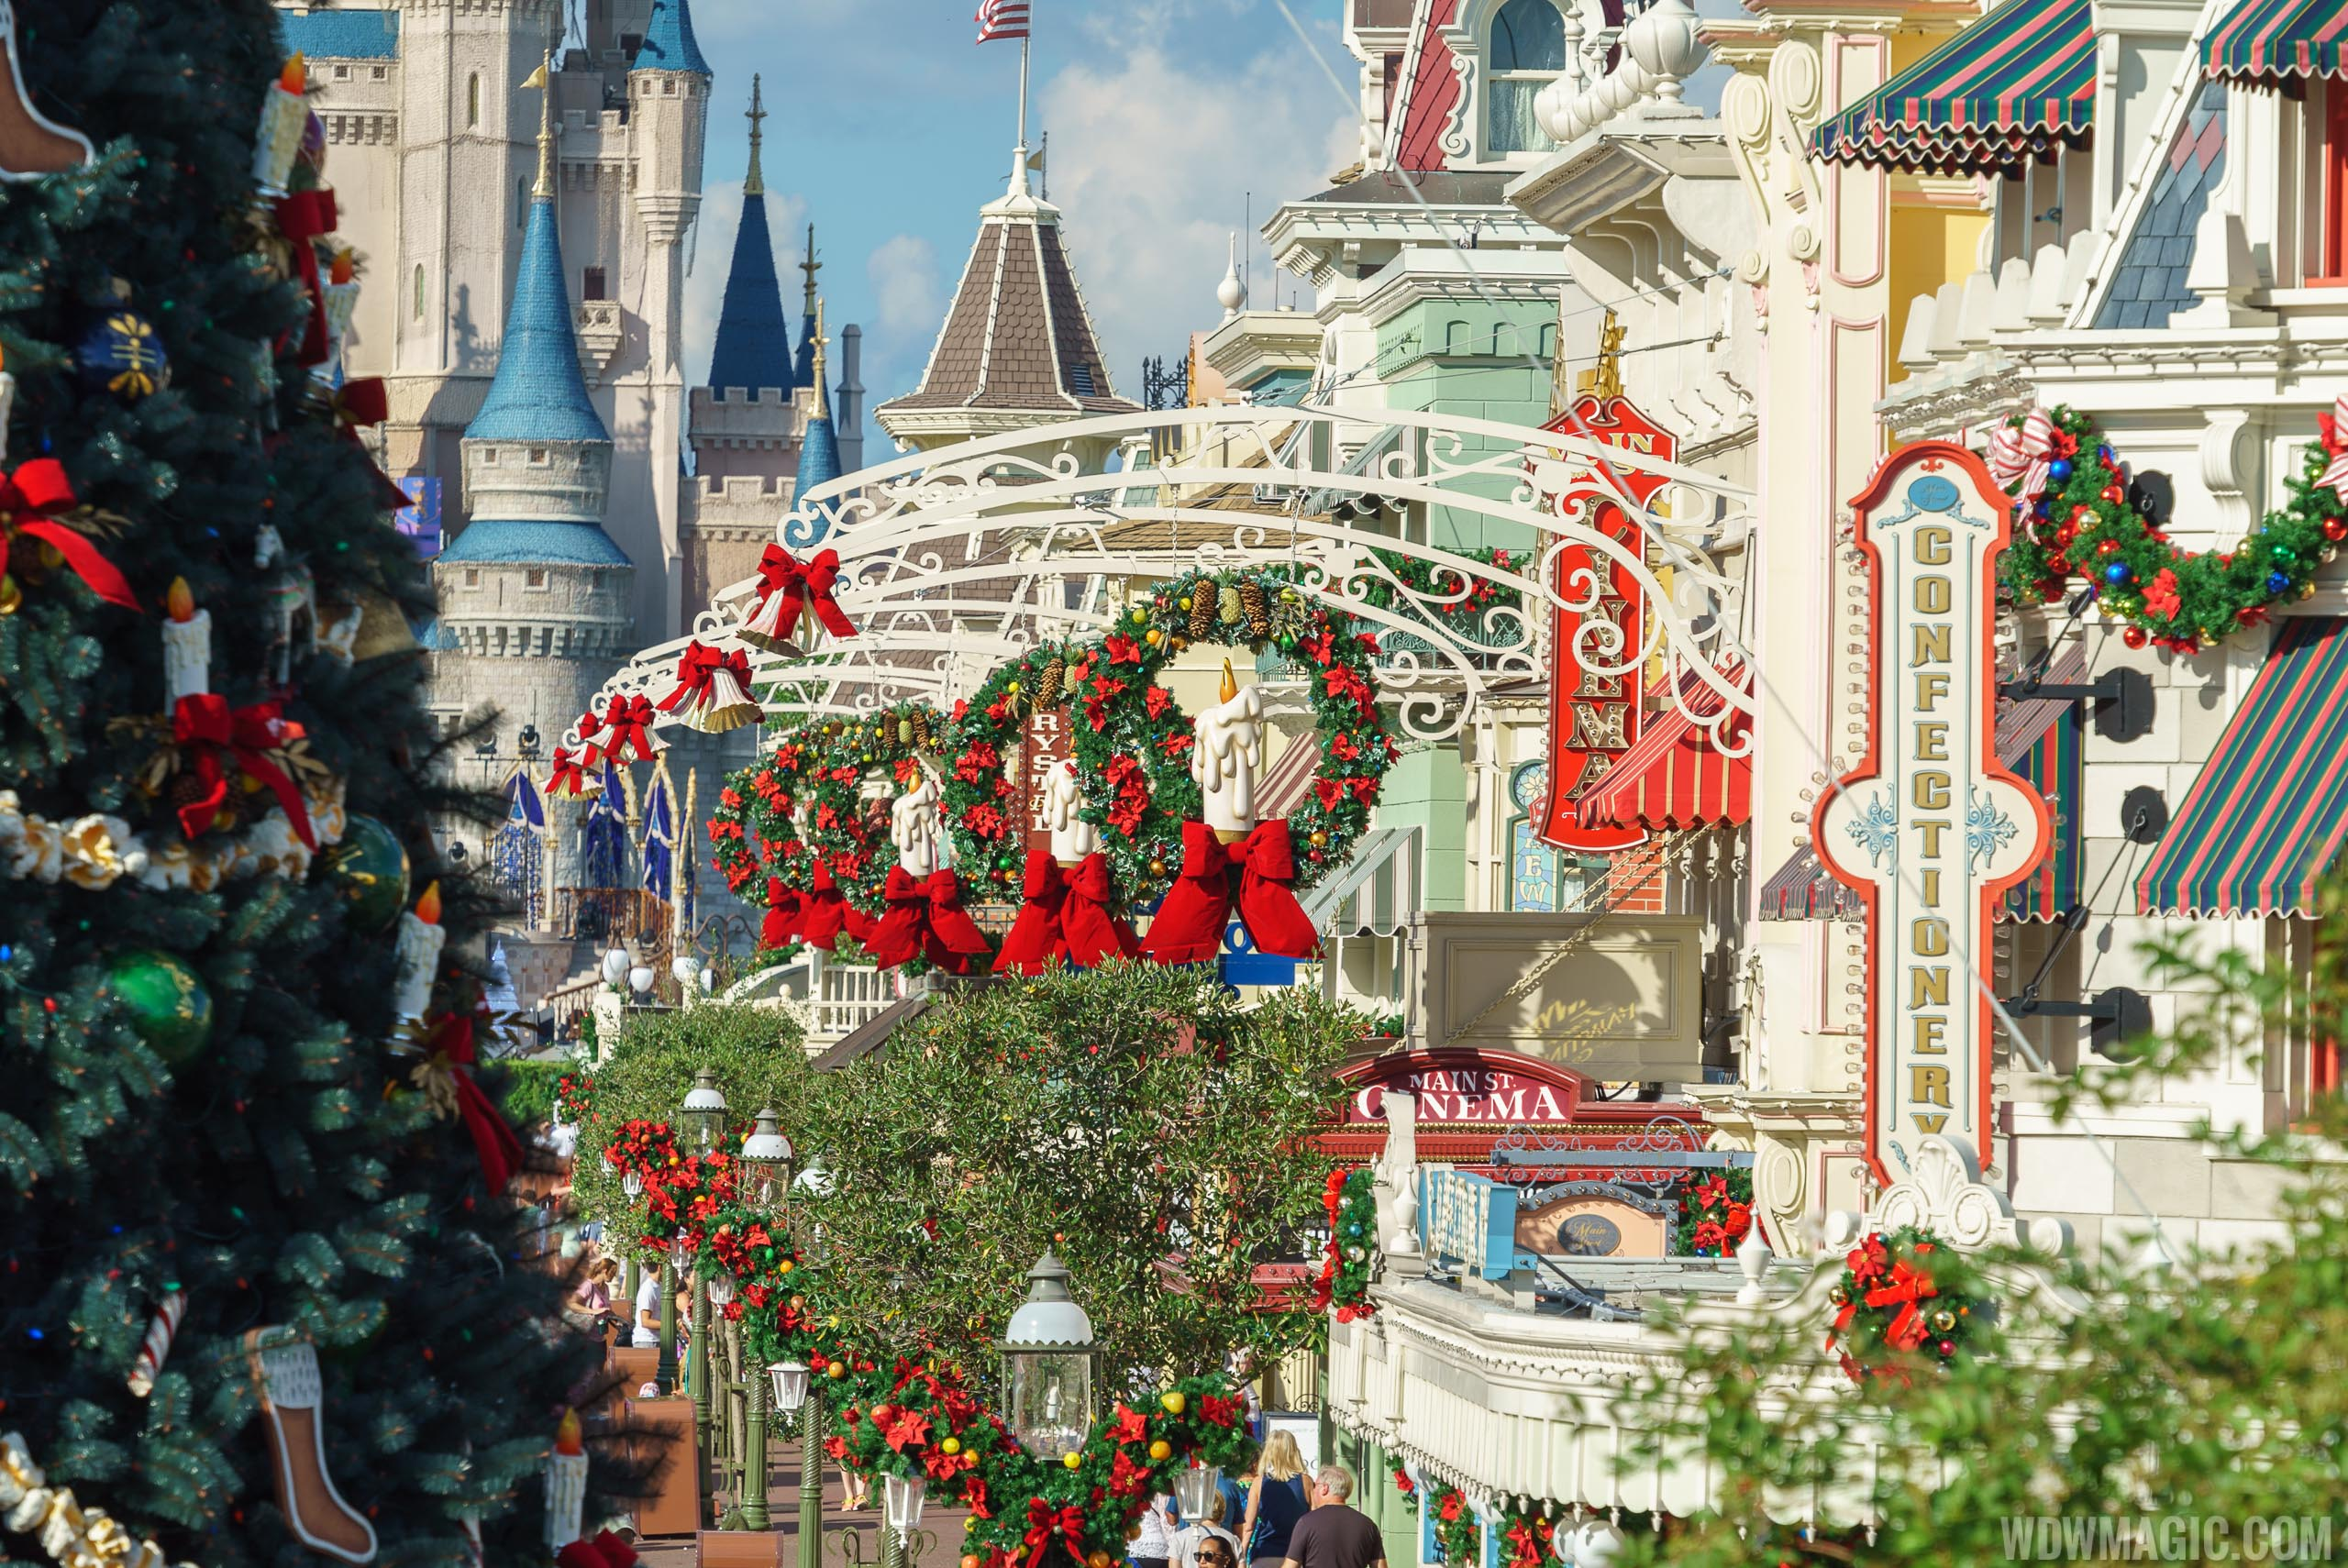 photos the magic kingdoms 2017 christmas holiday decorations - Christmas Decorations 2017